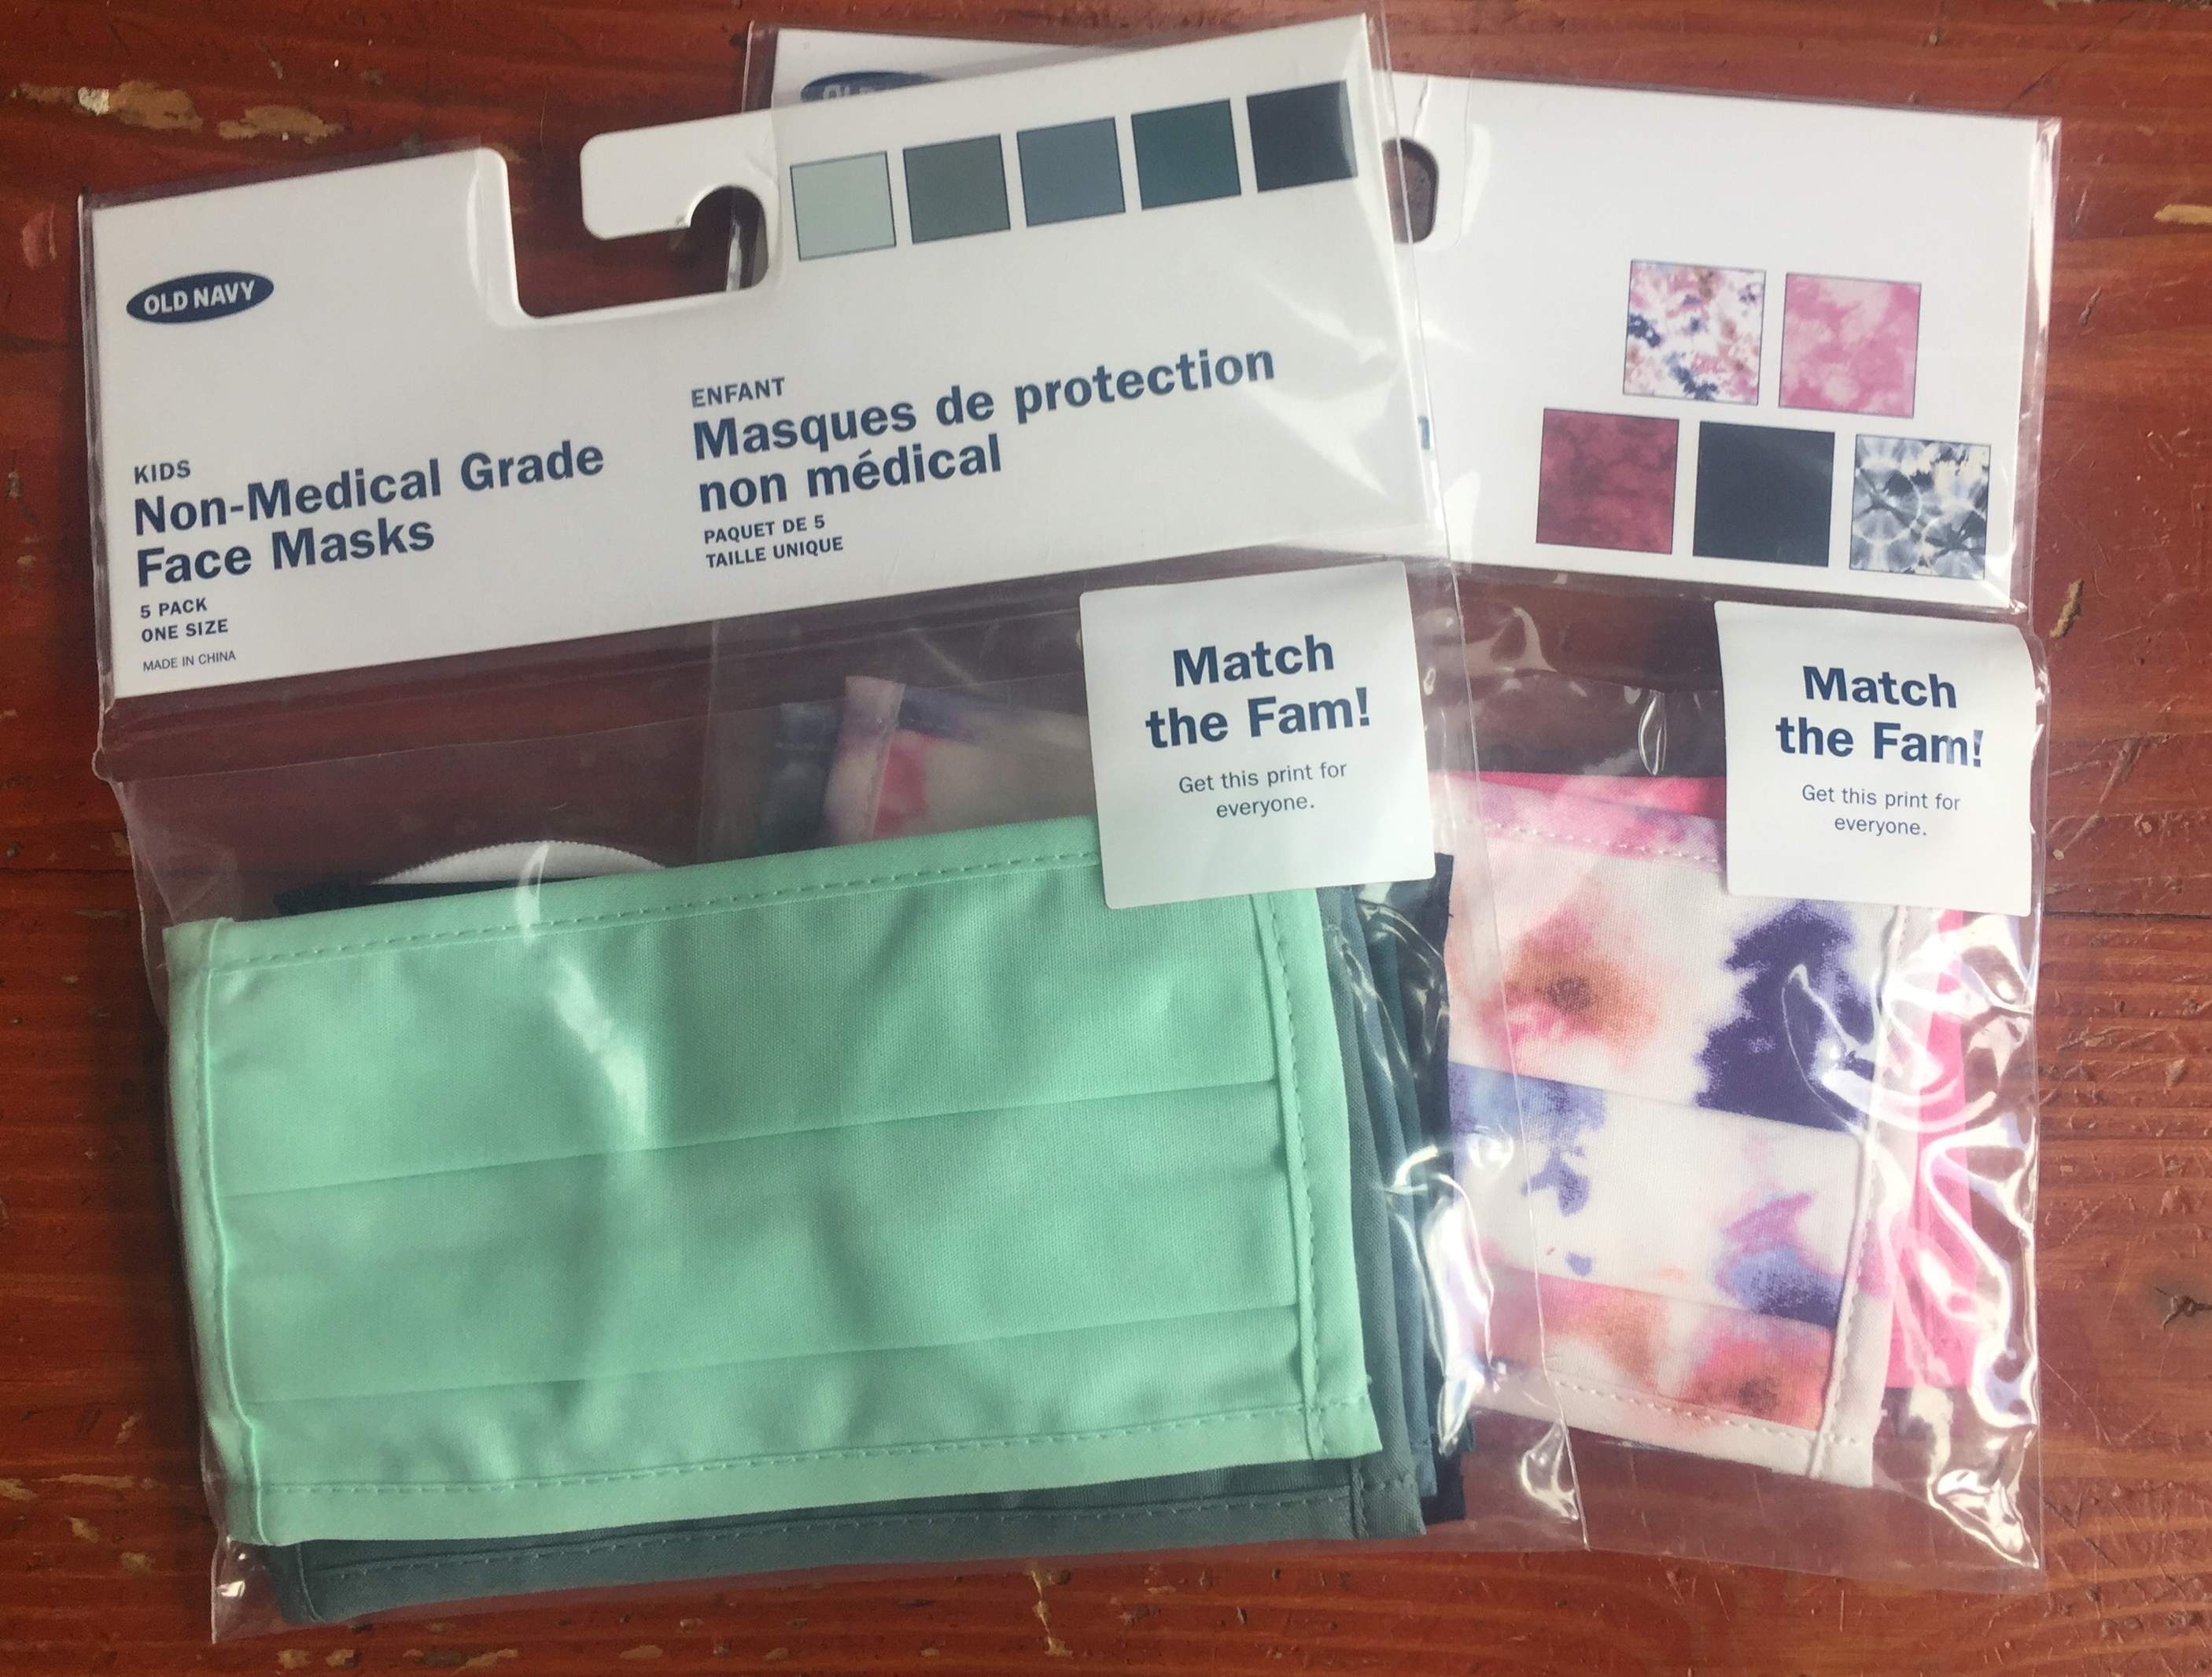 Old Navy non-medical grade three layer face masks for kids five pack